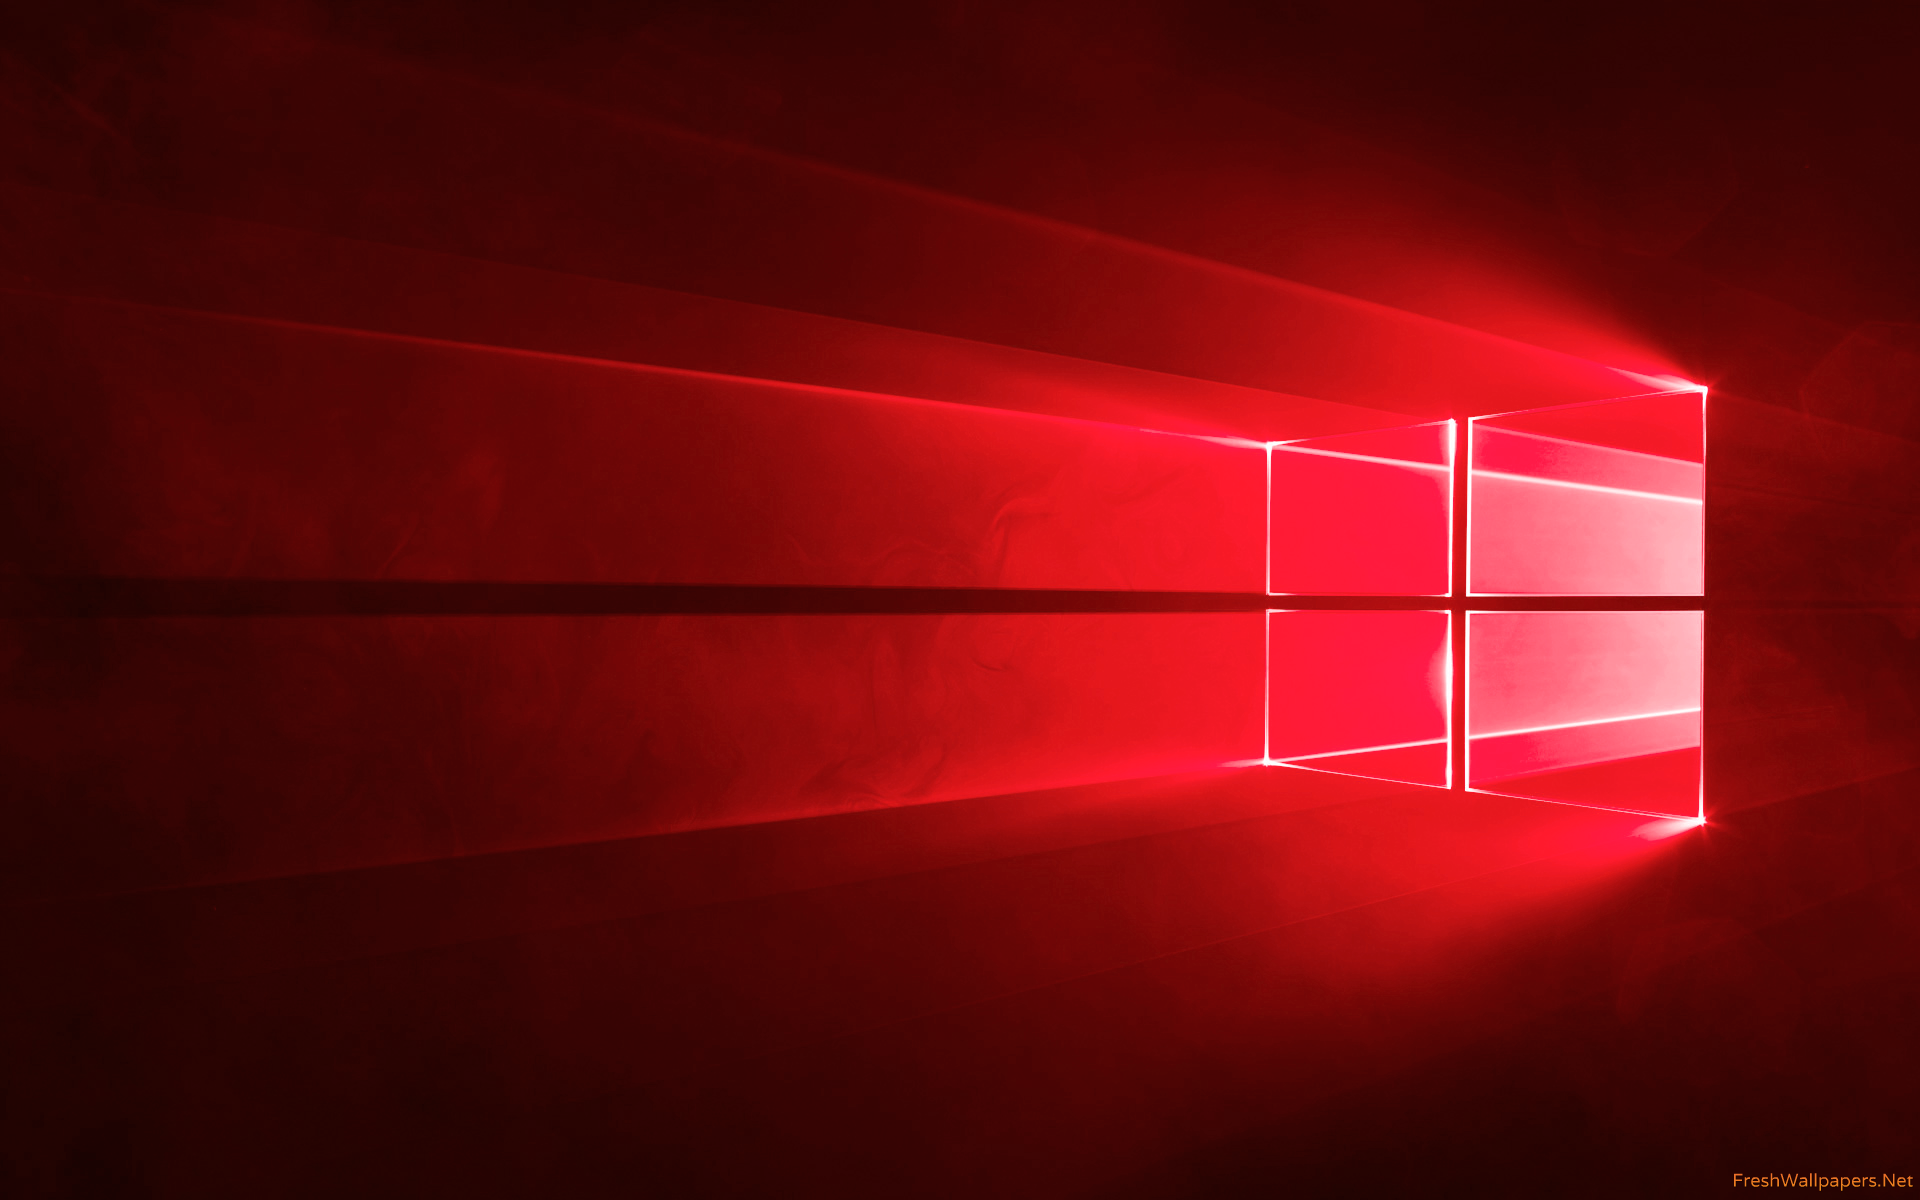 Windows 10 Official Red wallpaper 4k